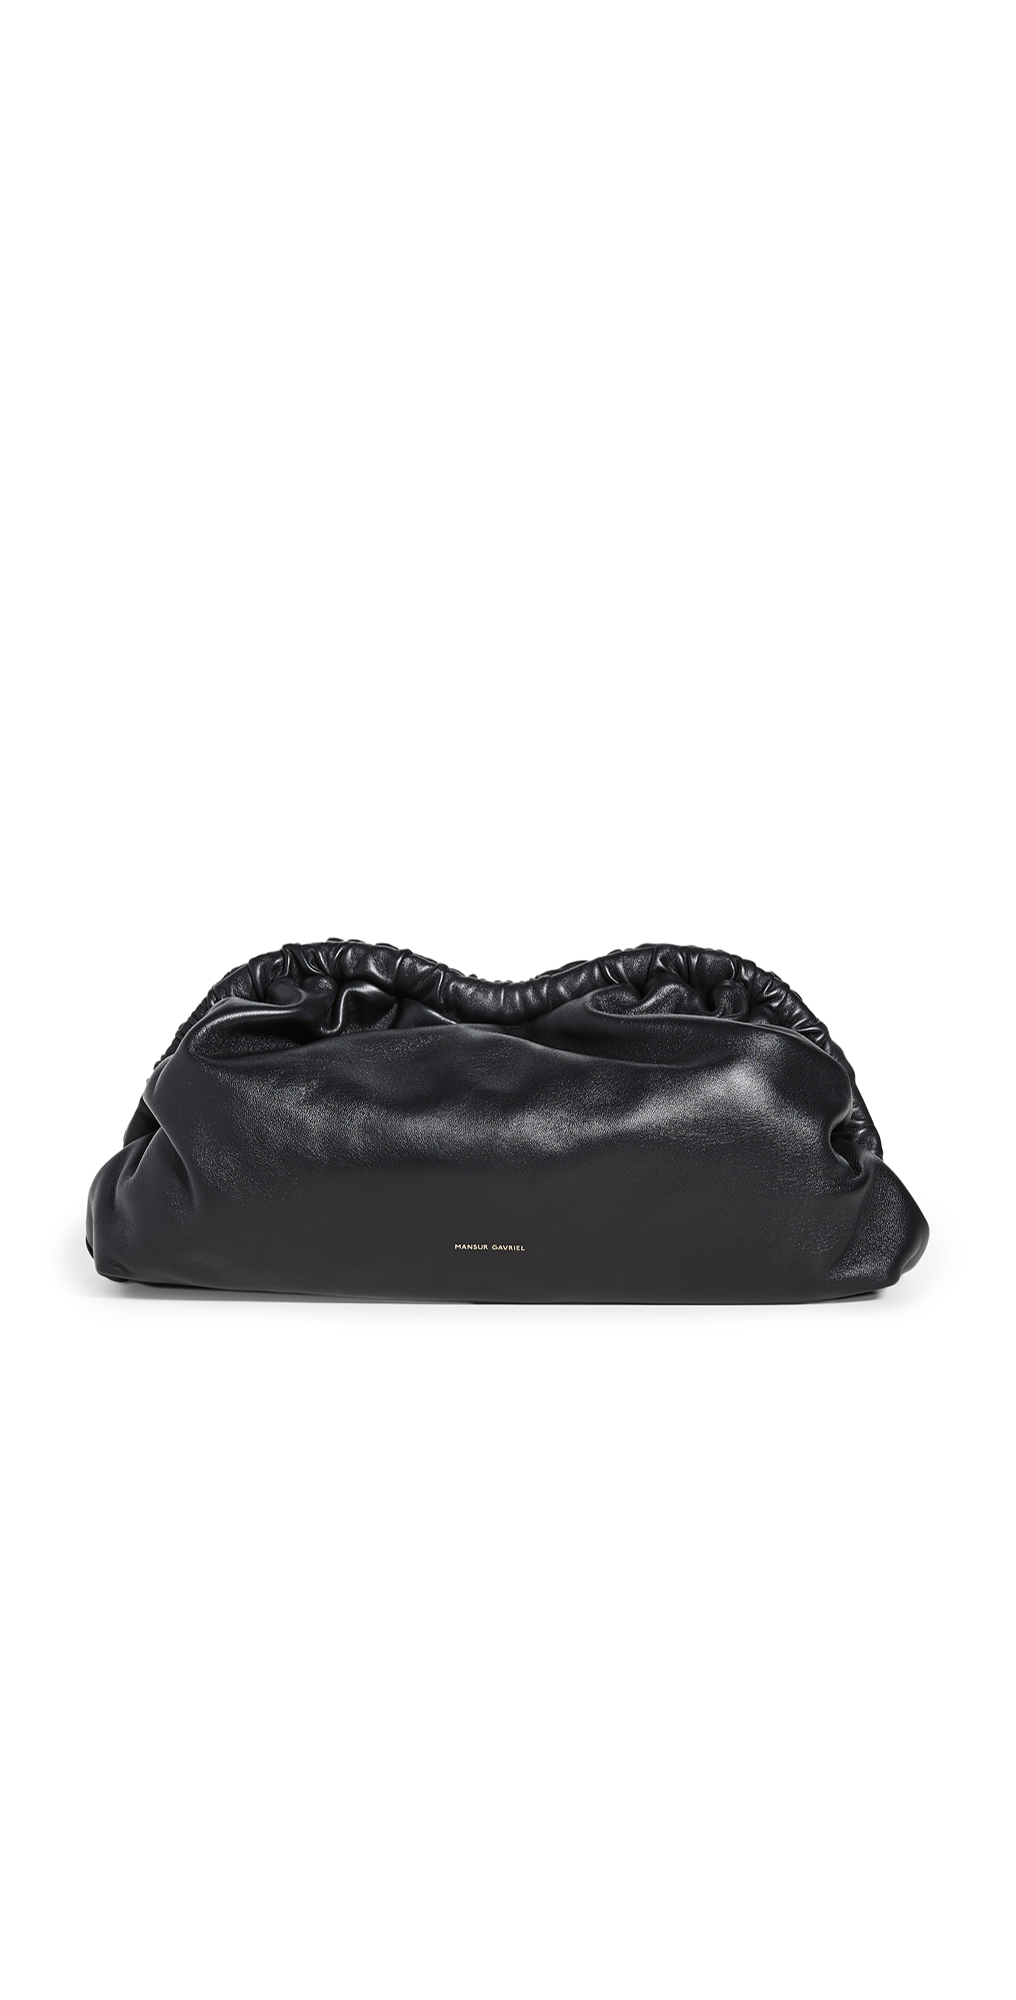 Mansur Gavriel Cloud Clutch